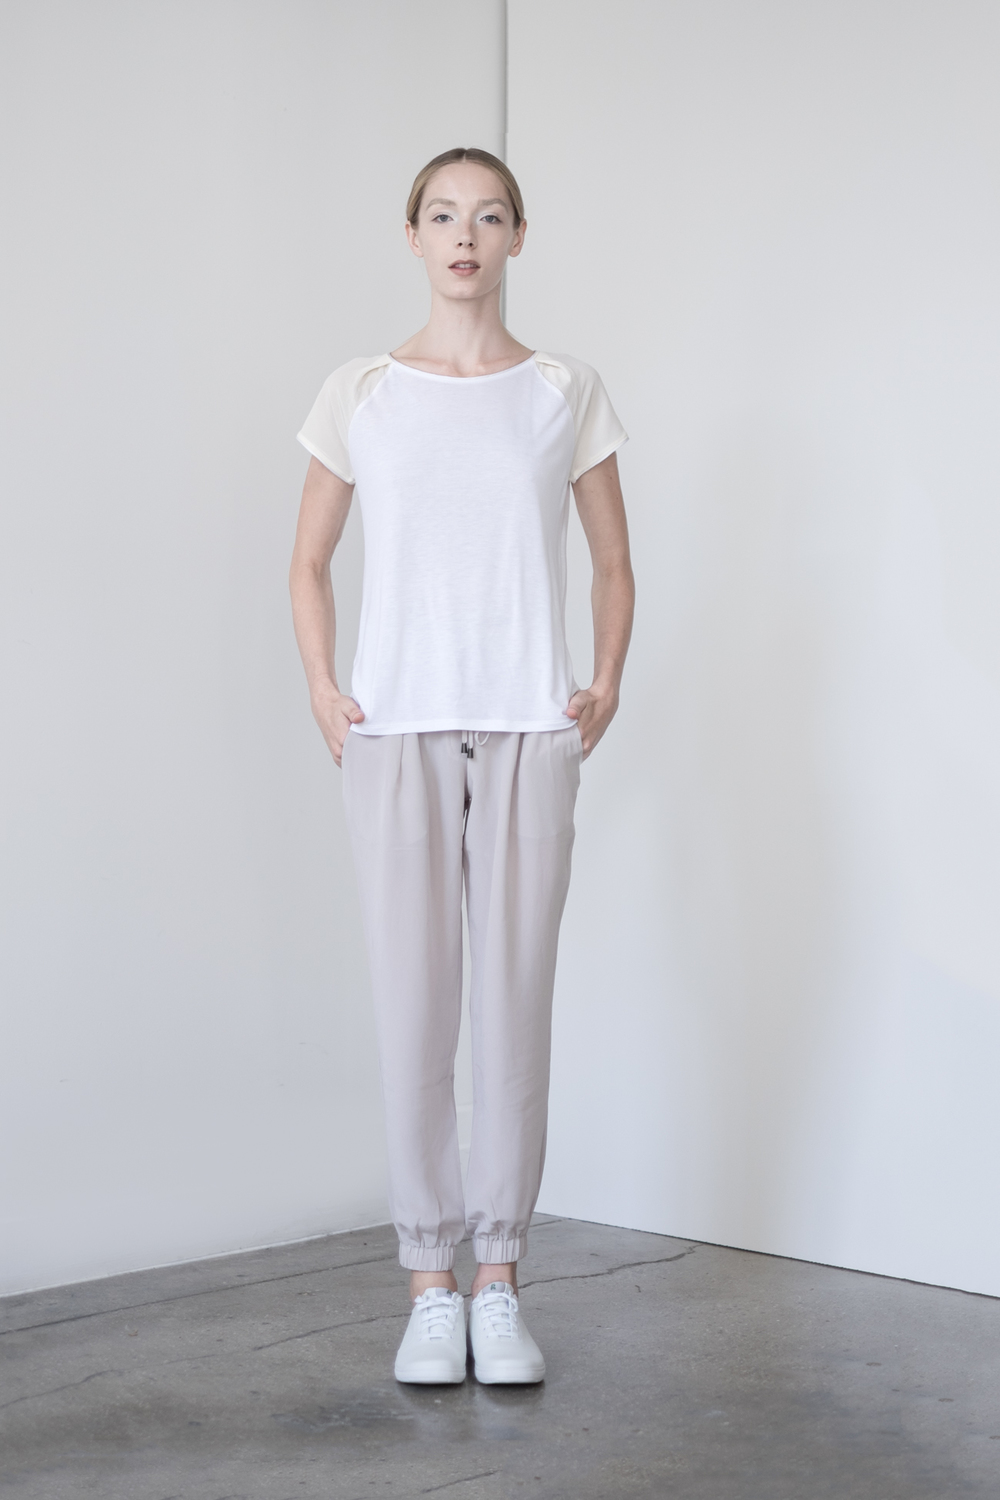 "LOOK 14   TOP:   2285  / Blanc -            0   0   2015-09-15T00:56:00Z   1   7   42   Rick Owens   1   1   48   14.0                       Normal   0             false   false   false     EN-US   JA   X-NONE                                                                                                                                                                                                                                                                                                                                                                               /* Style Definitions */ table.MsoNormalTable 	{mso-style-name:""Table Normal""; 	mso-tstyle-rowband-size:0; 	mso-tstyle-colband-size:0; 	mso-style-noshow:yes; 	mso-style-priority:99; 	mso-style-parent:""""; 	mso-padding-alt:0in 5.4pt 0in 5.4pt; 	mso-para-margin:0in; 	mso-para-margin-bottom:.0001pt; 	mso-pagination:widow-orphan; 	font-size:12.0pt; 	font-family:Cambria; 	mso-ascii-font-family:Cambria; 	mso-ascii-theme-font:minor-latin; 	mso-hansi-font-family:Cambria; 	mso-hansi-theme-font:minor-latin;}      Short sleeve silk & viscose color block T-shirt.    BOTTOM:   2203  / Dove -    Jogger pants in 100% Silk."